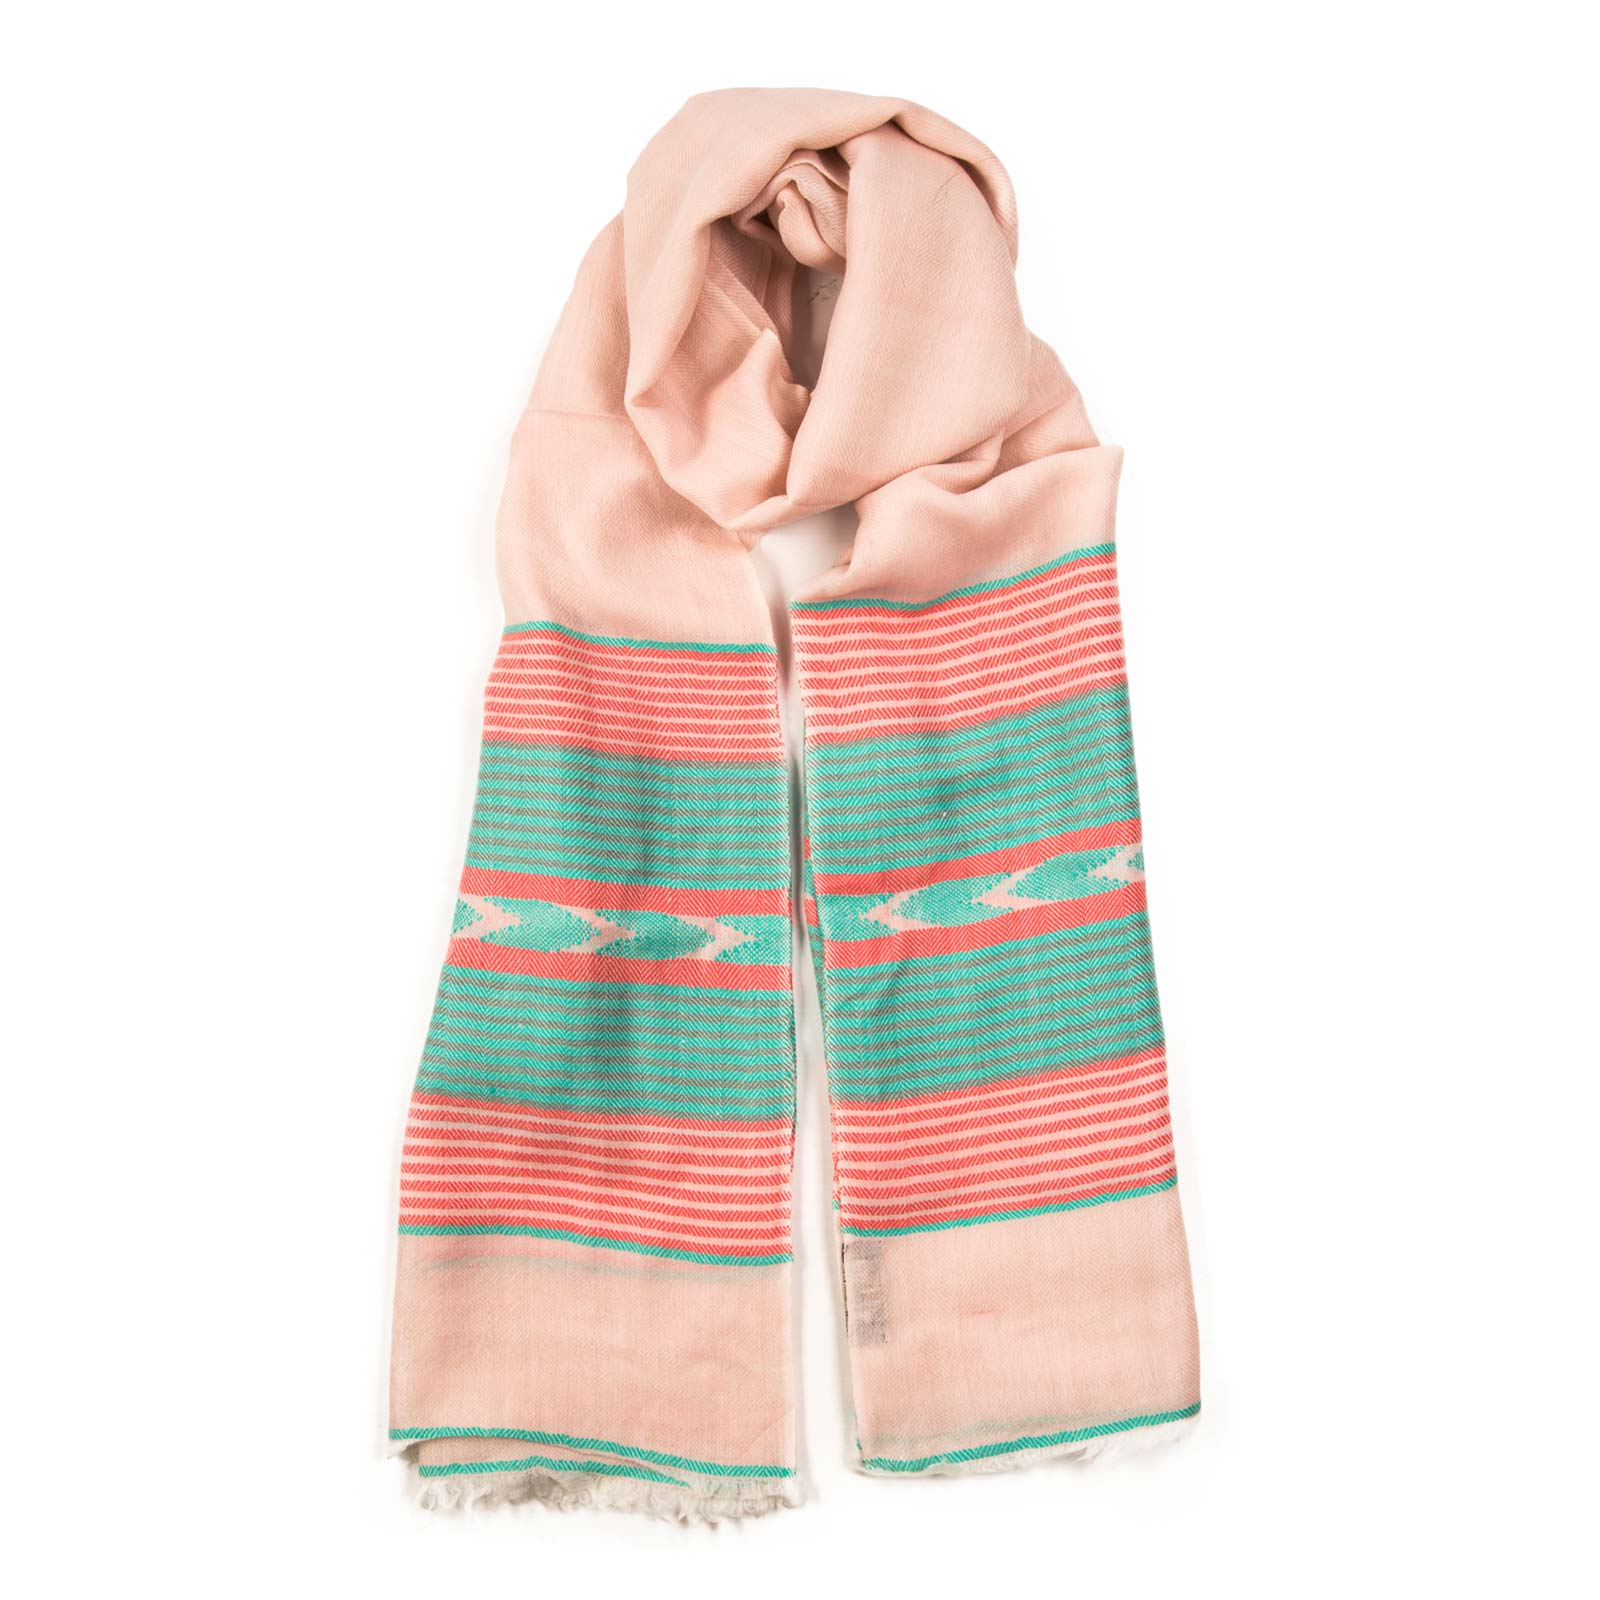 Aurora bursts with beautiful bands of color set on a pale cloud background. A hand woven and luxurious lightweight Pashmina, wear it your way. From Beshlie Mckelvie